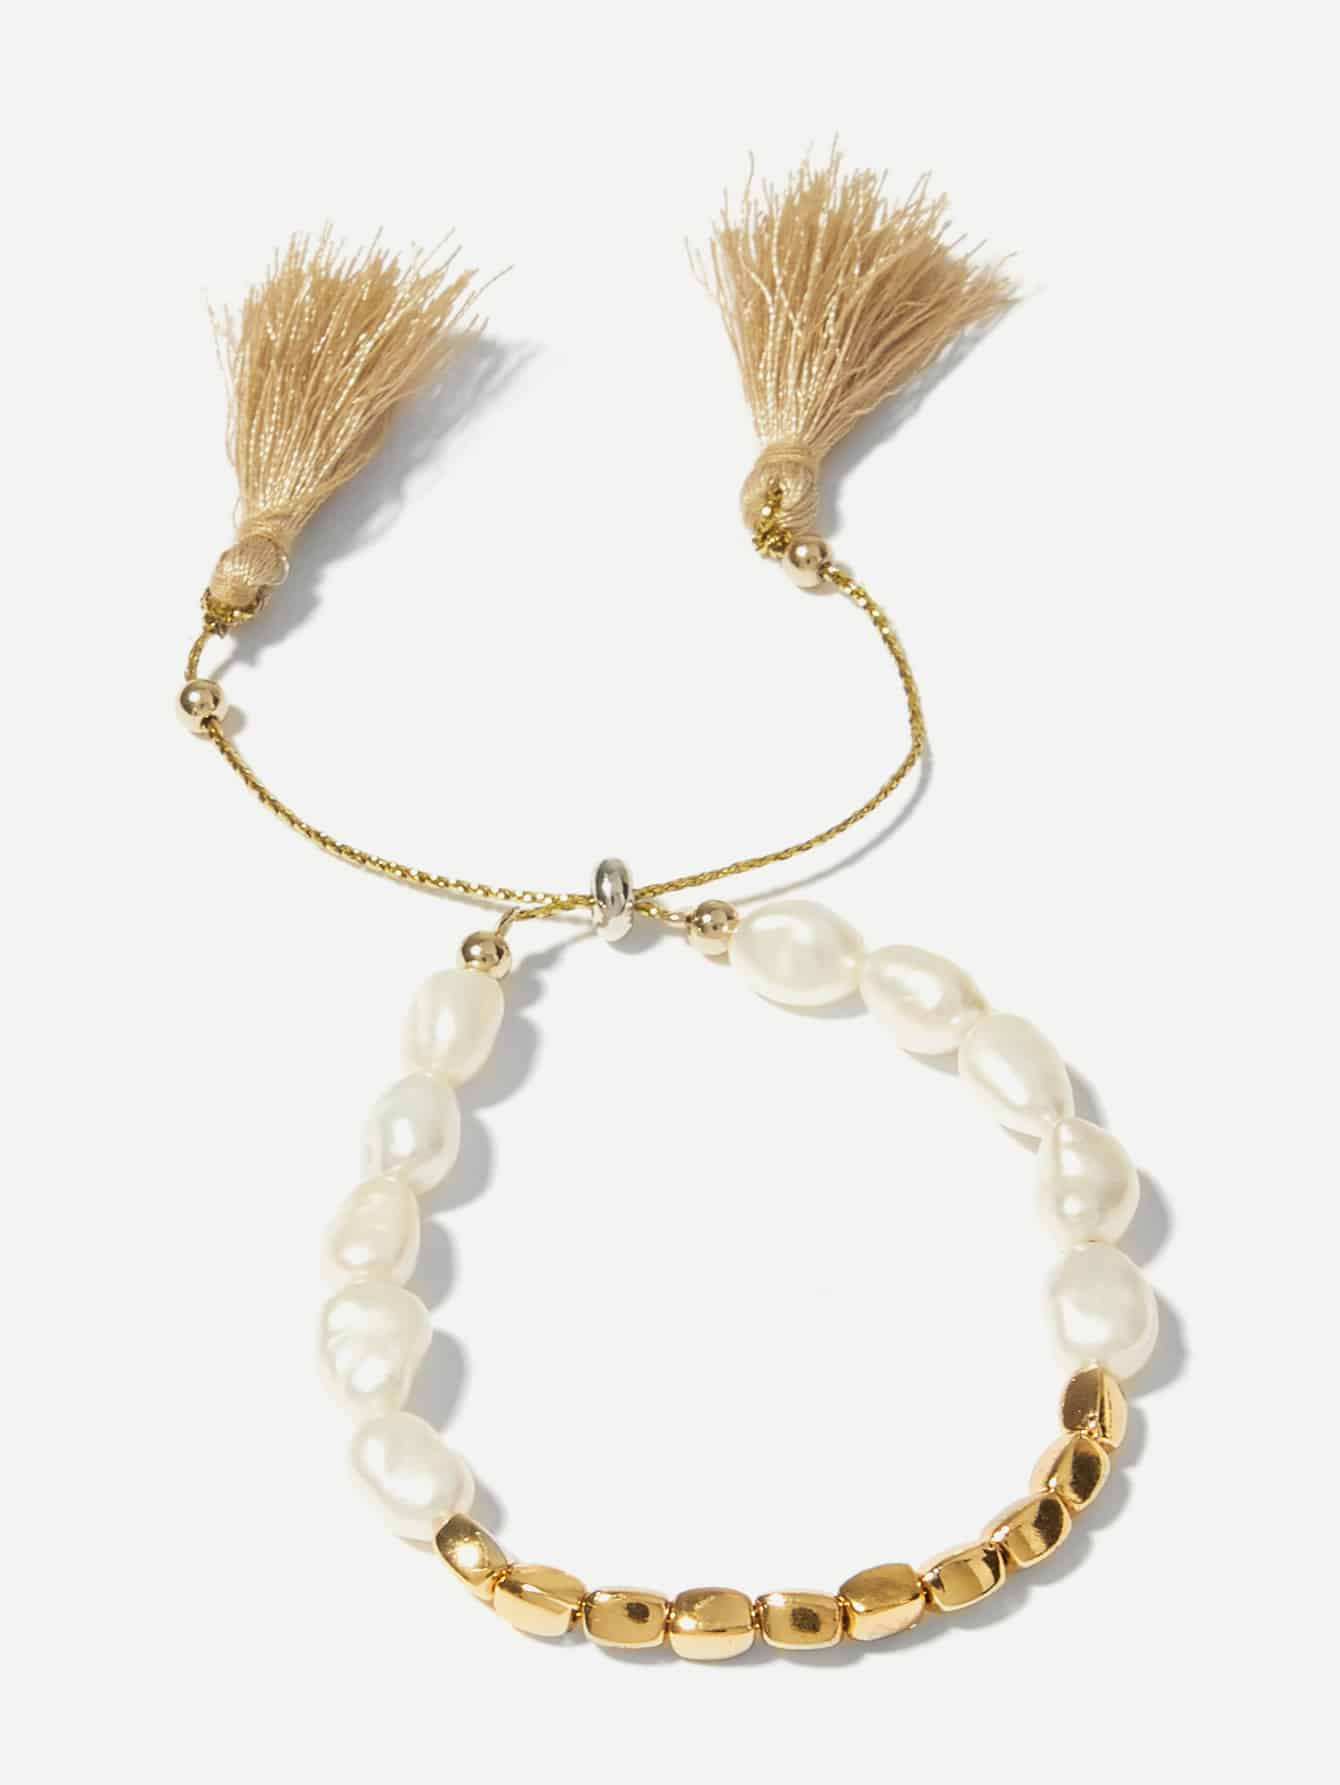 Golden Beaded And Tassel With White Faux Pearl Bracelet 1pc